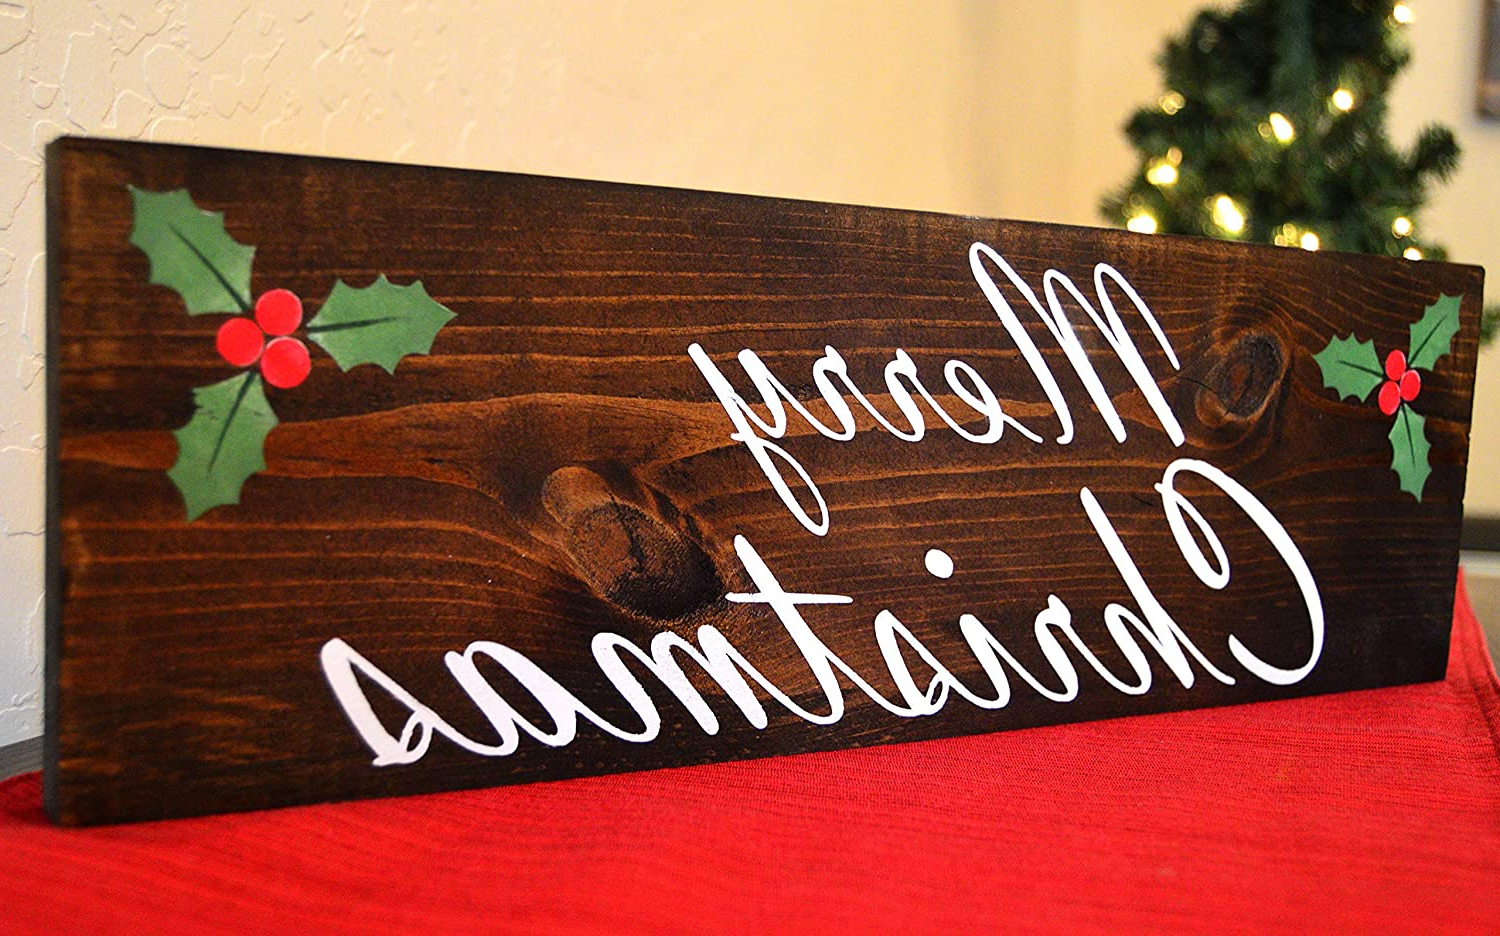 Current Amazon: Rfy9u7 Merry Christmas Wood Sign – Holiday Wall Regarding Merry Christmas Sign Wall Décor (View 6 of 20)